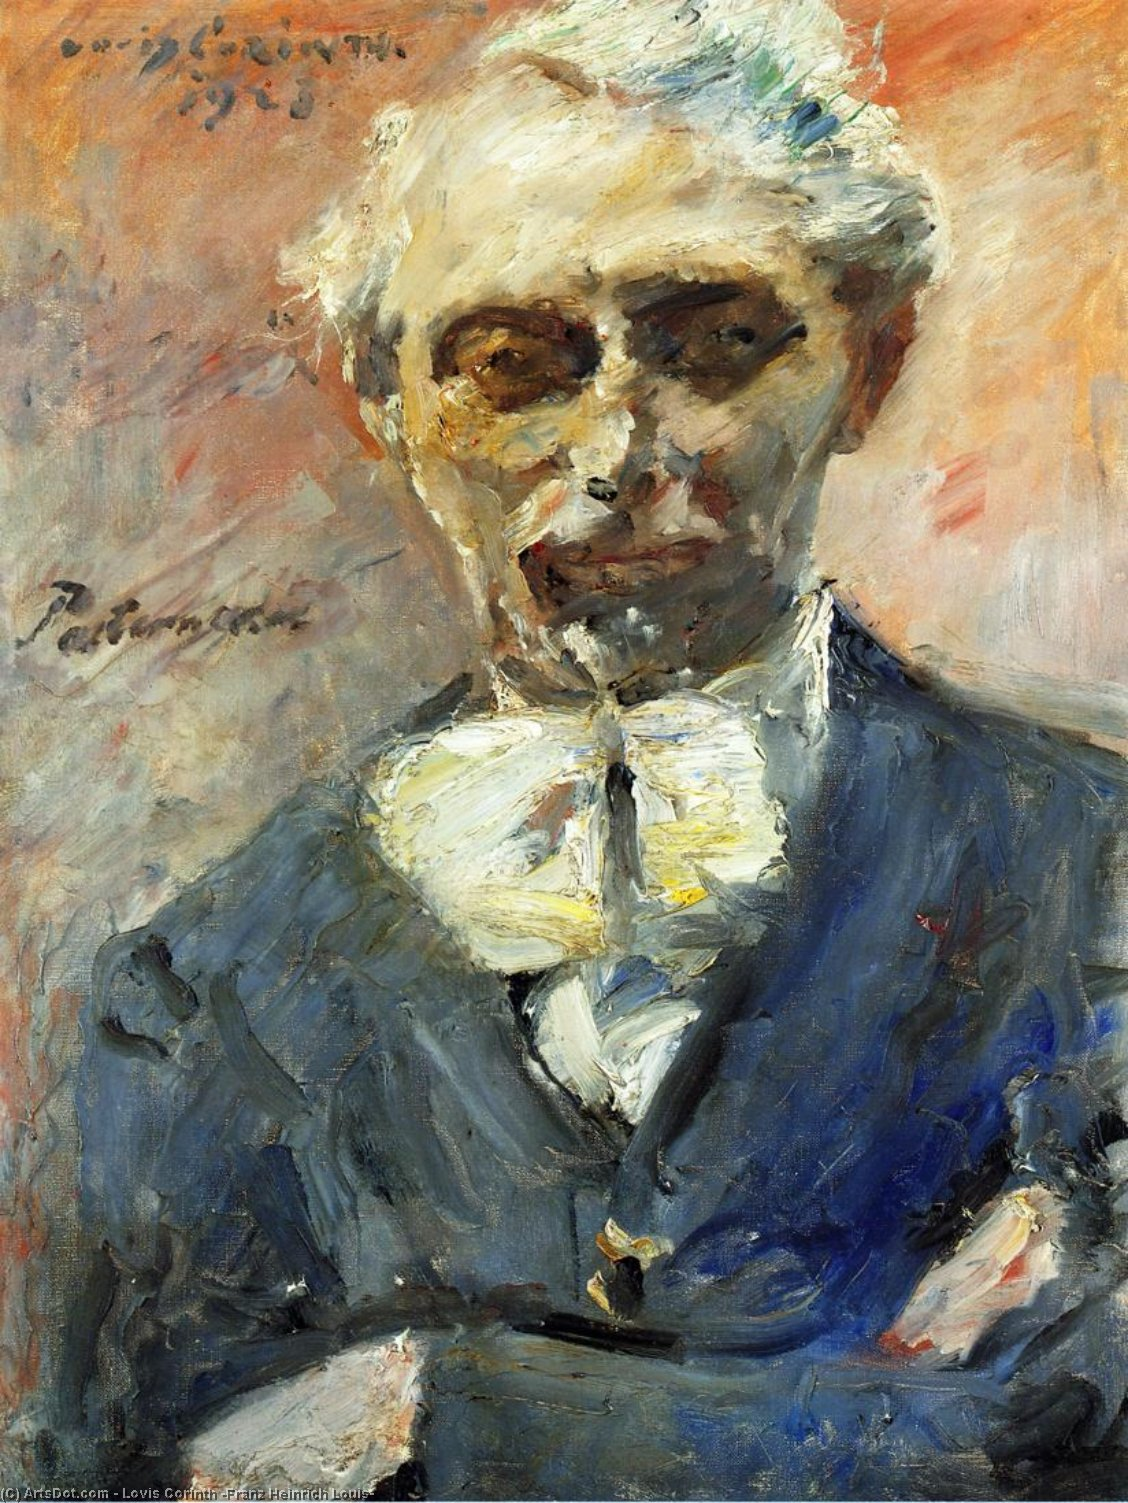 Portrait of the Painter Leonid Pasternak, Oil On Canvas by Lovis Corinth (Franz Heinrich Louis) (1858-1925, Netherlands)